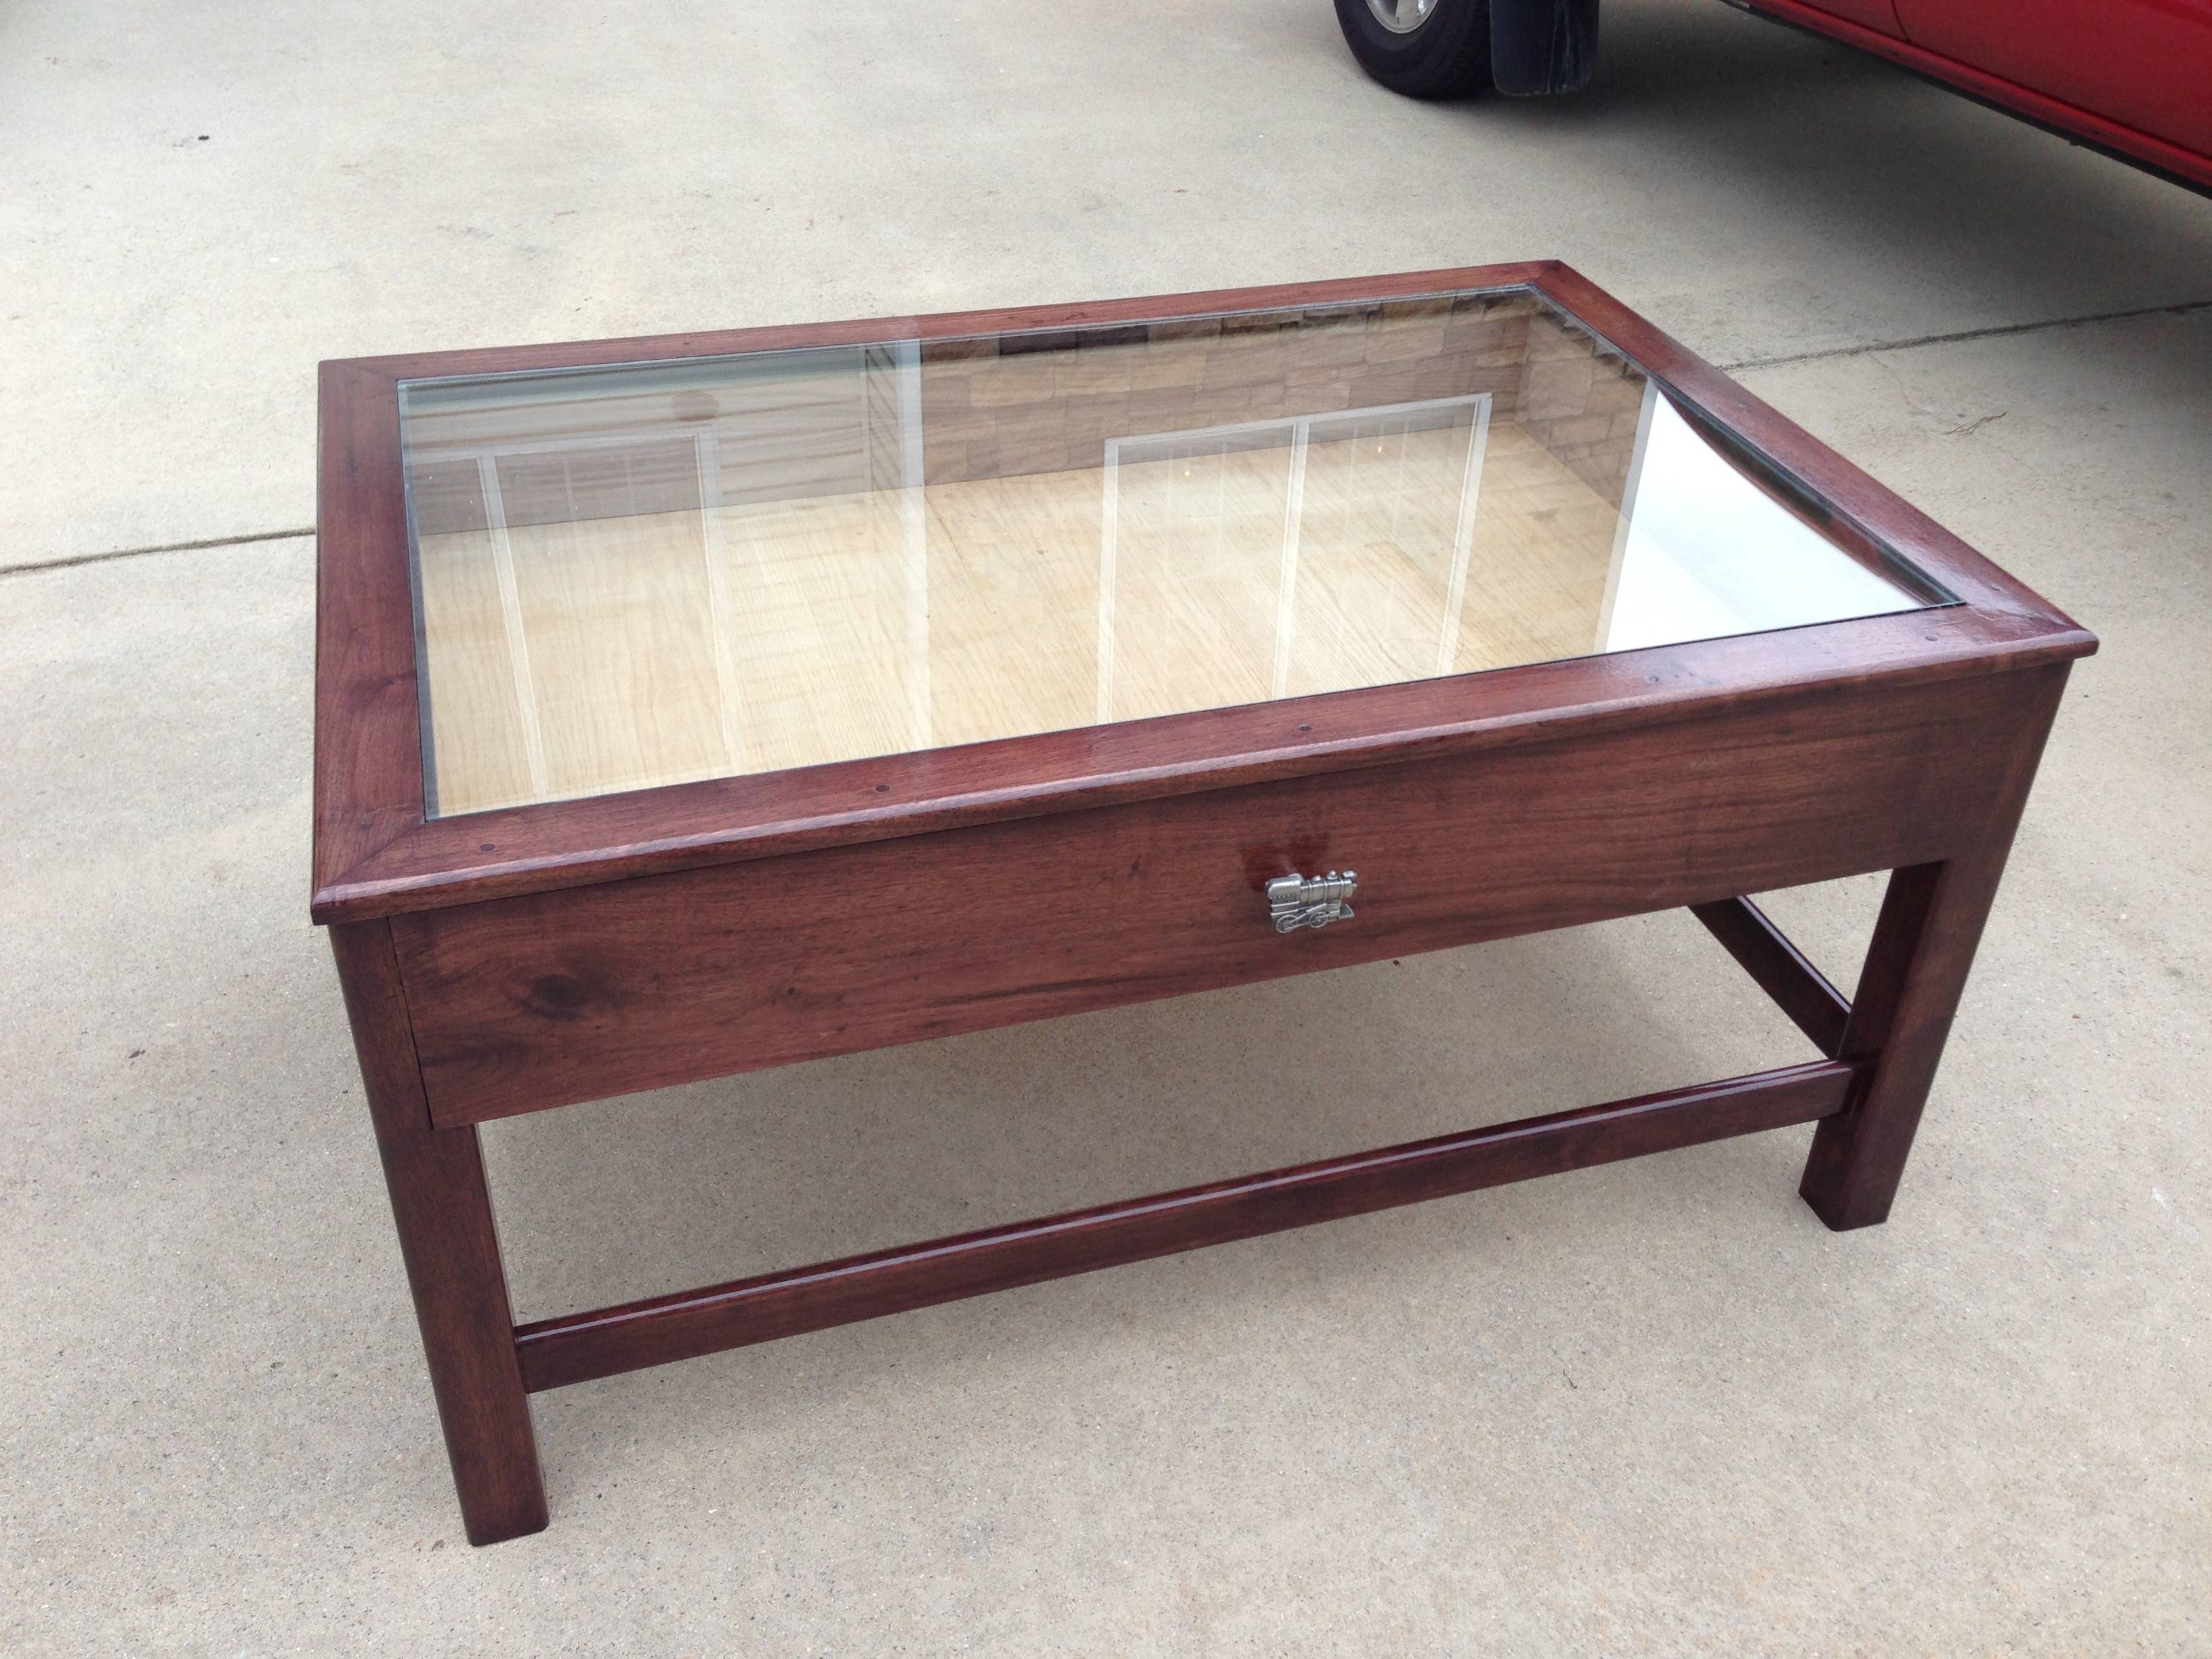 Coffee Table With Glass Top Storage Interior Home Design – Jericho Throughout Square Storage Coffee Tables (View 4 of 30)